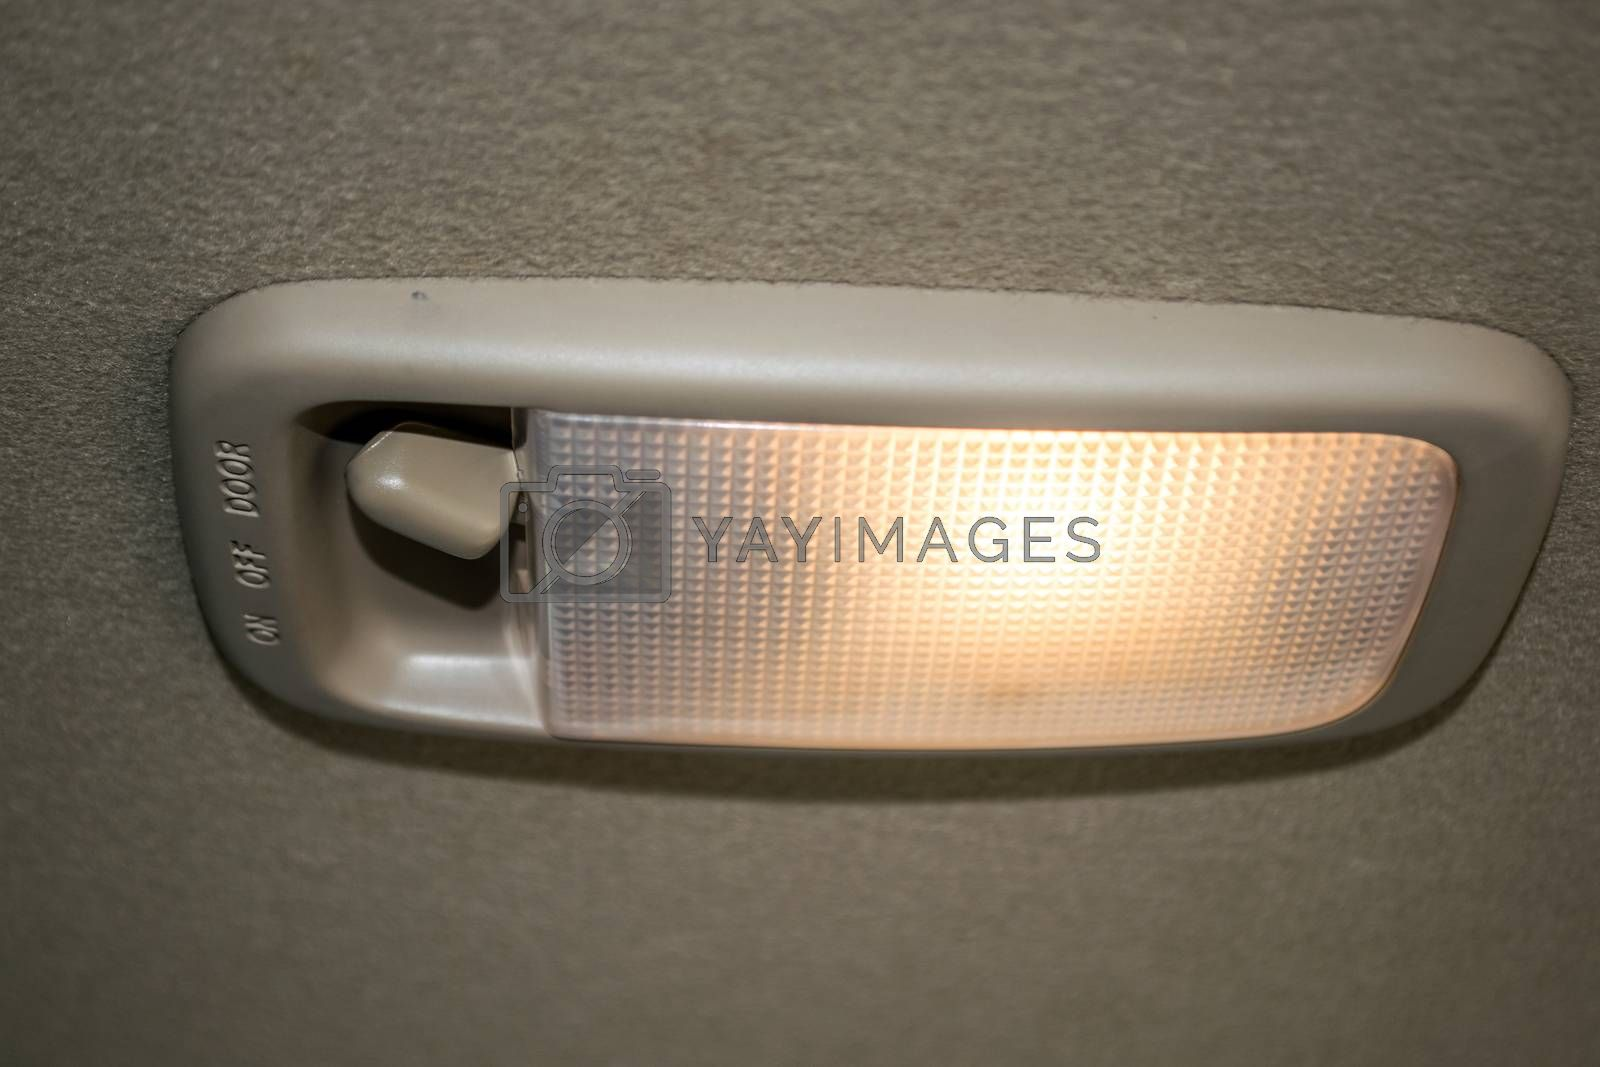 Automotive Lighting accessories for producing light in a car.